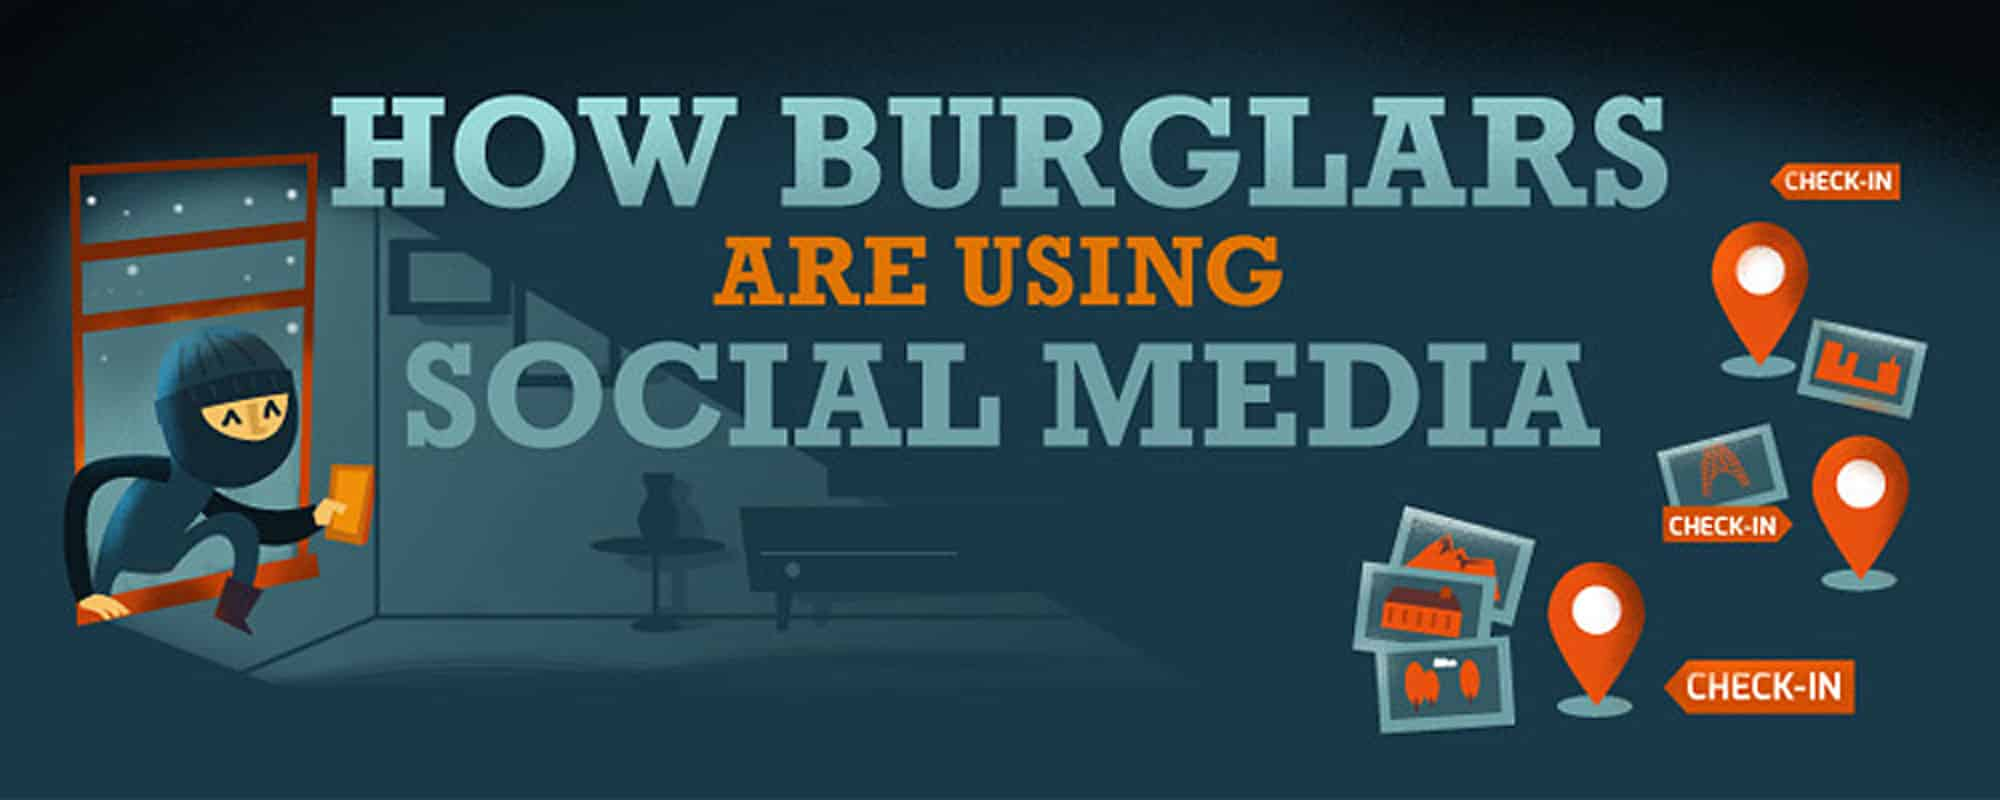 how burglars are using social media to select targets